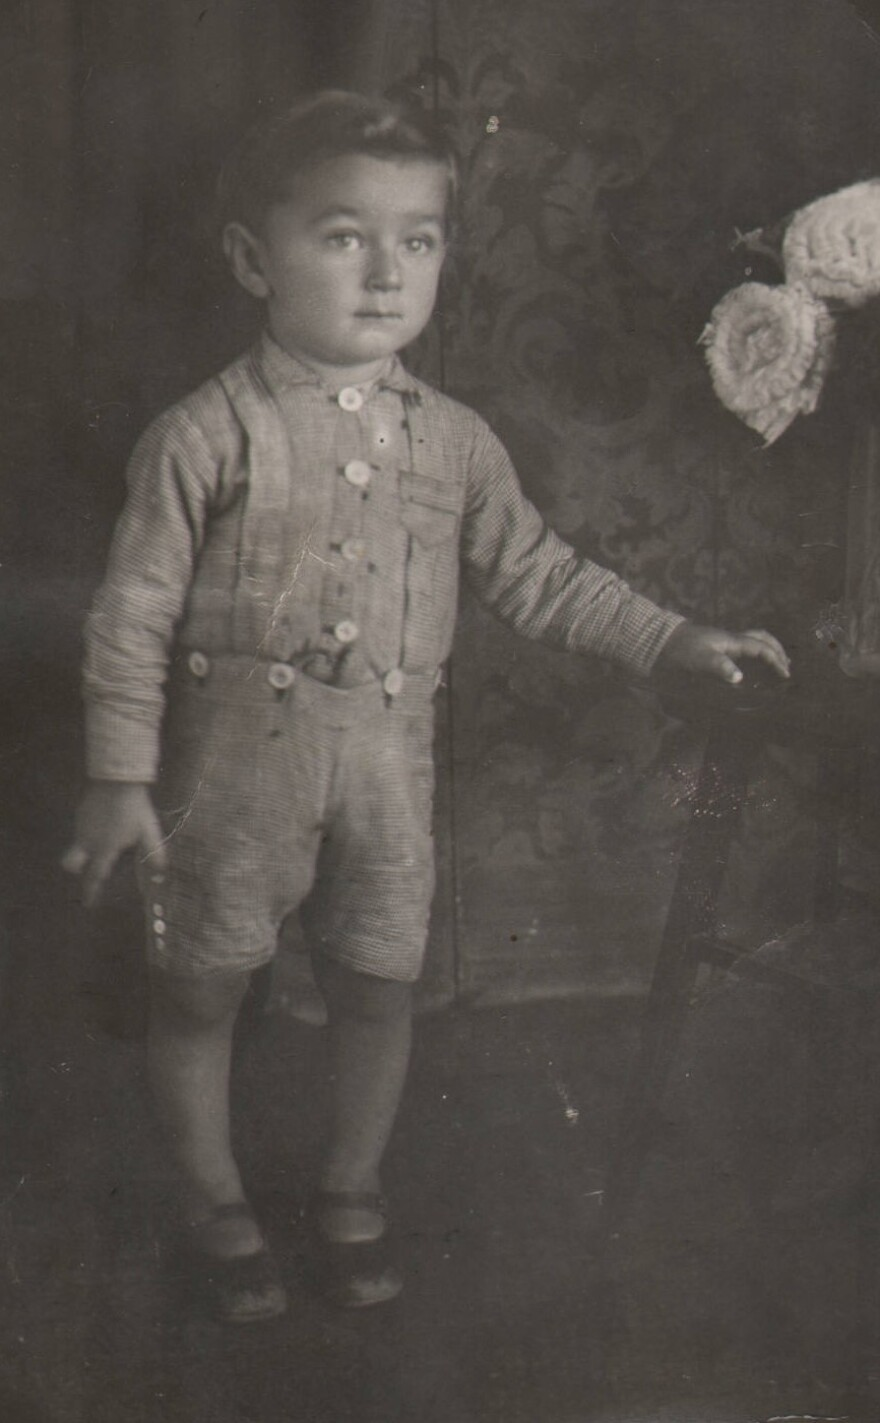 Oskar Jakob at age three in Simleu Silvaniei, Romania. Eleven years later he was seized by Nazis and would survive multiple concentration camps. 4/15/19